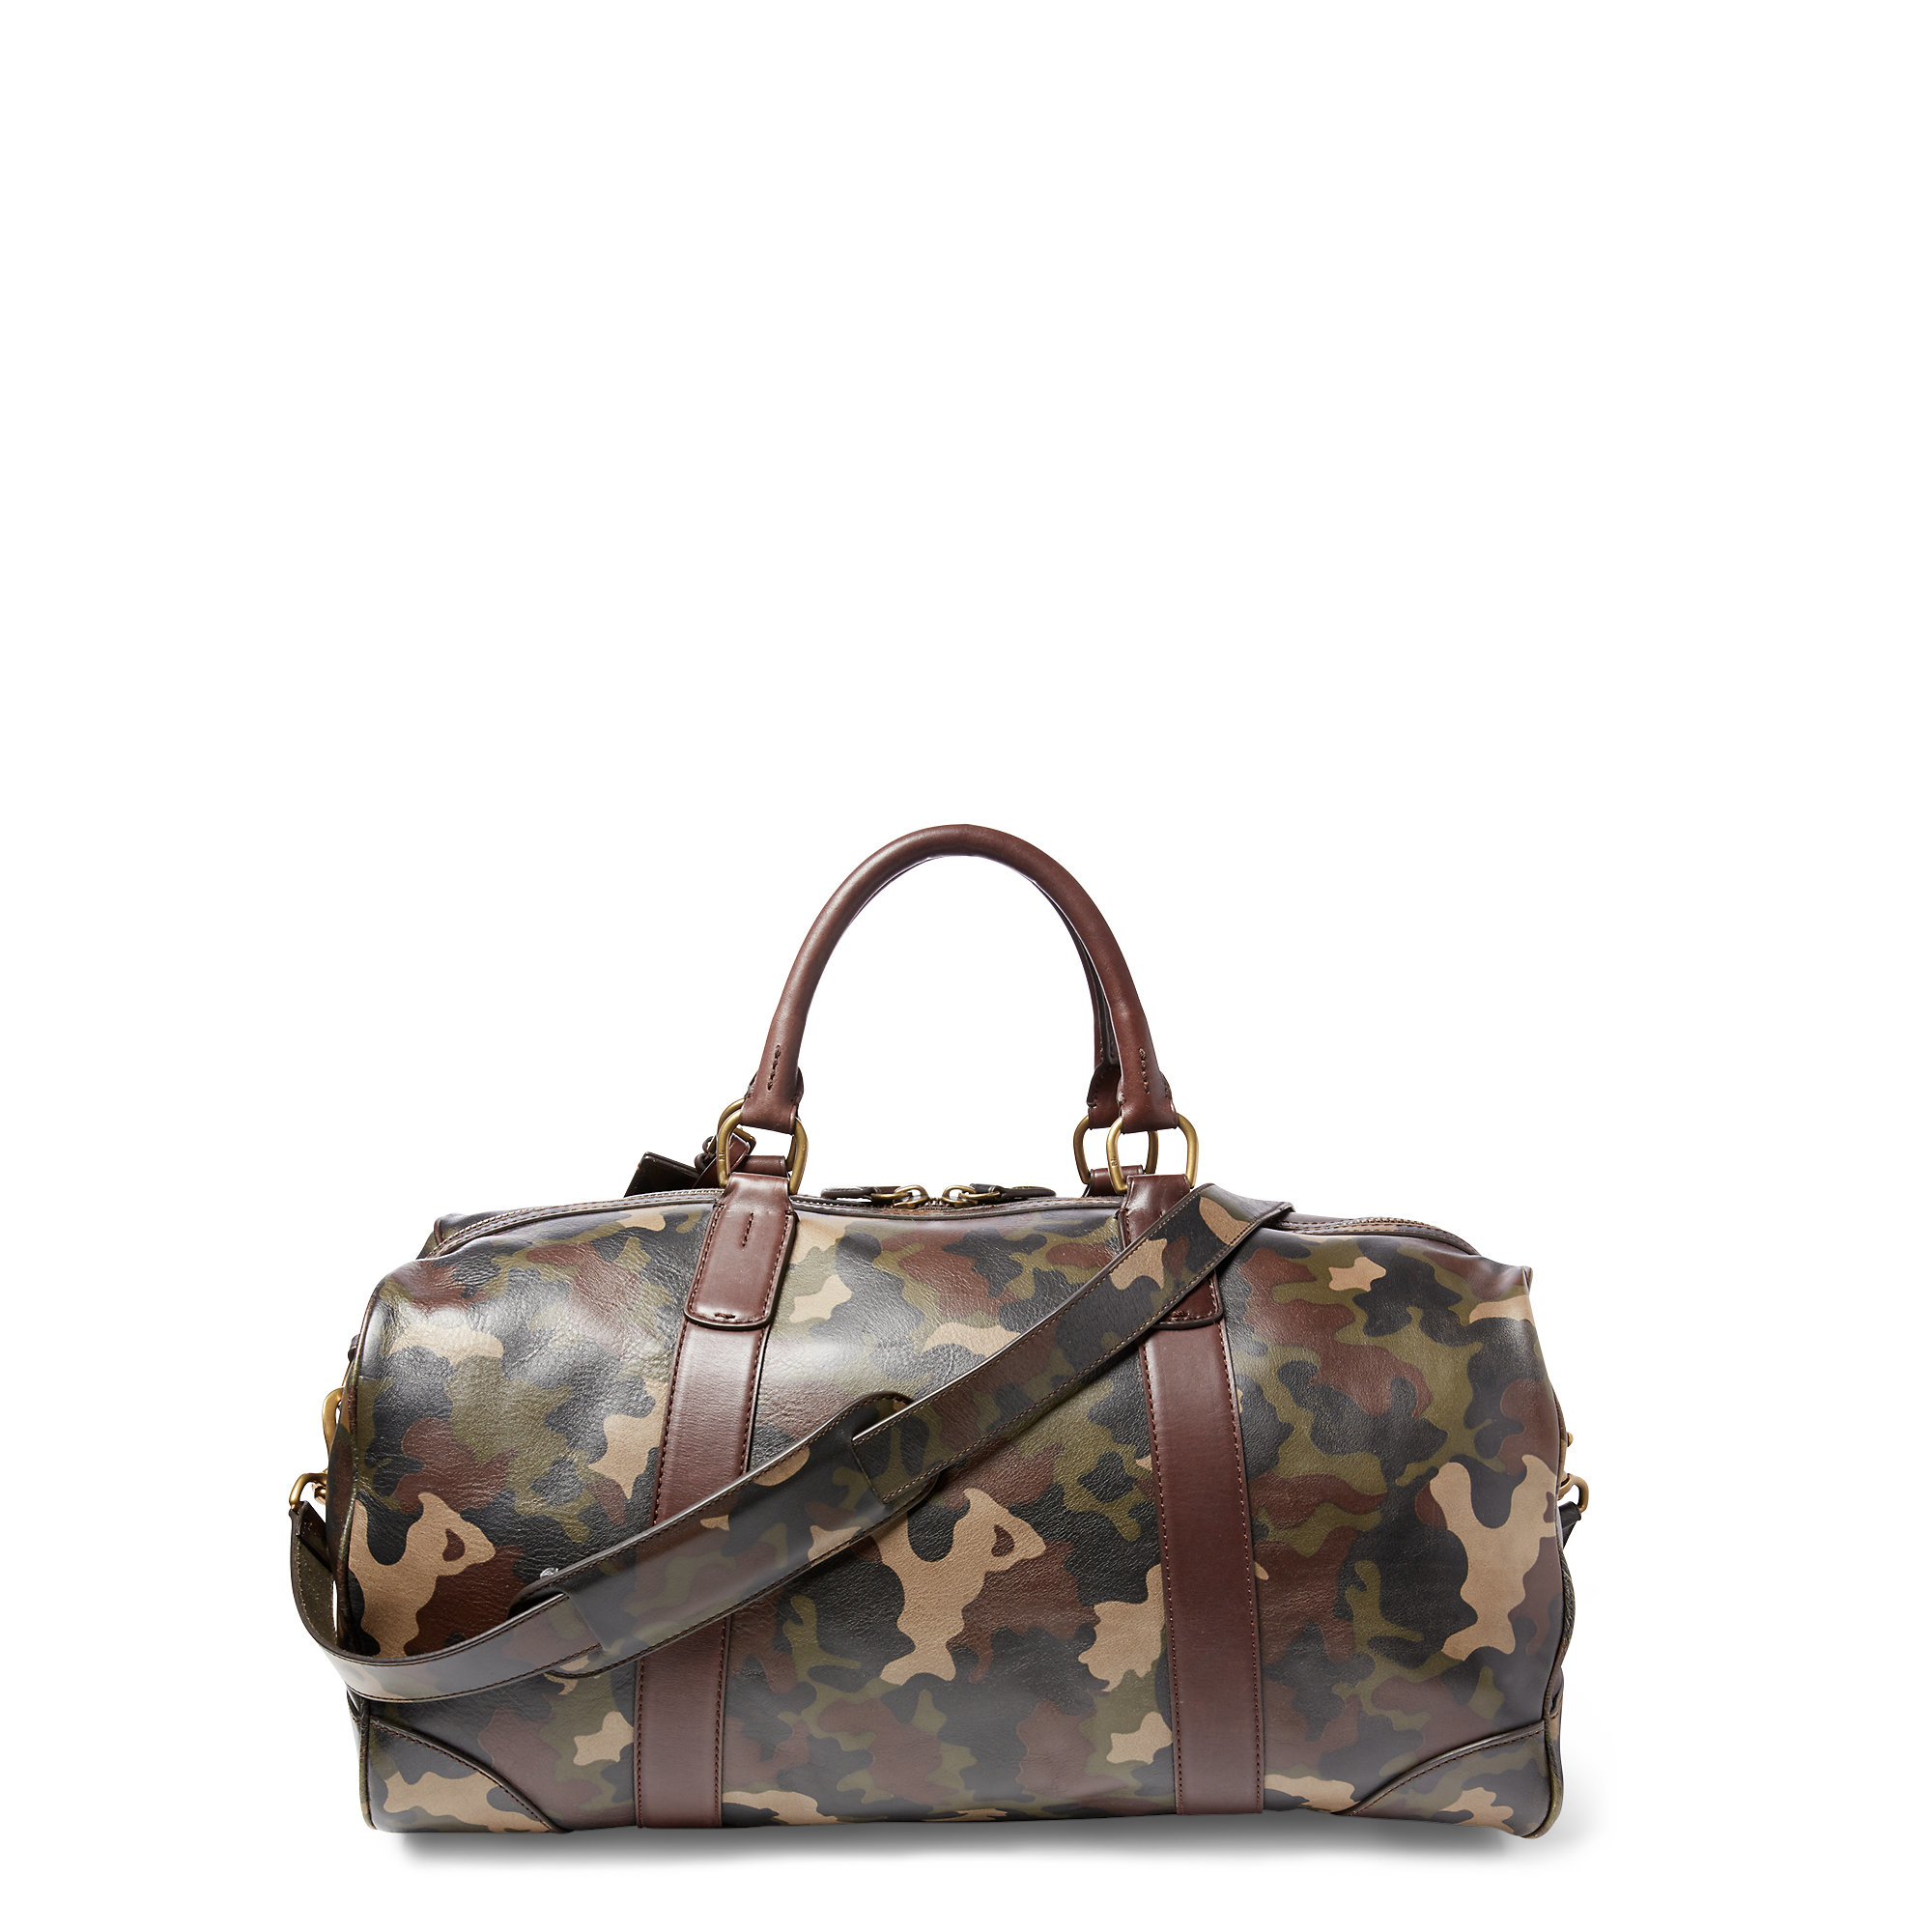 349111b7c8 Lyst - Polo Ralph Lauren Camouflage Leather Duffel Bag in Gray for Men